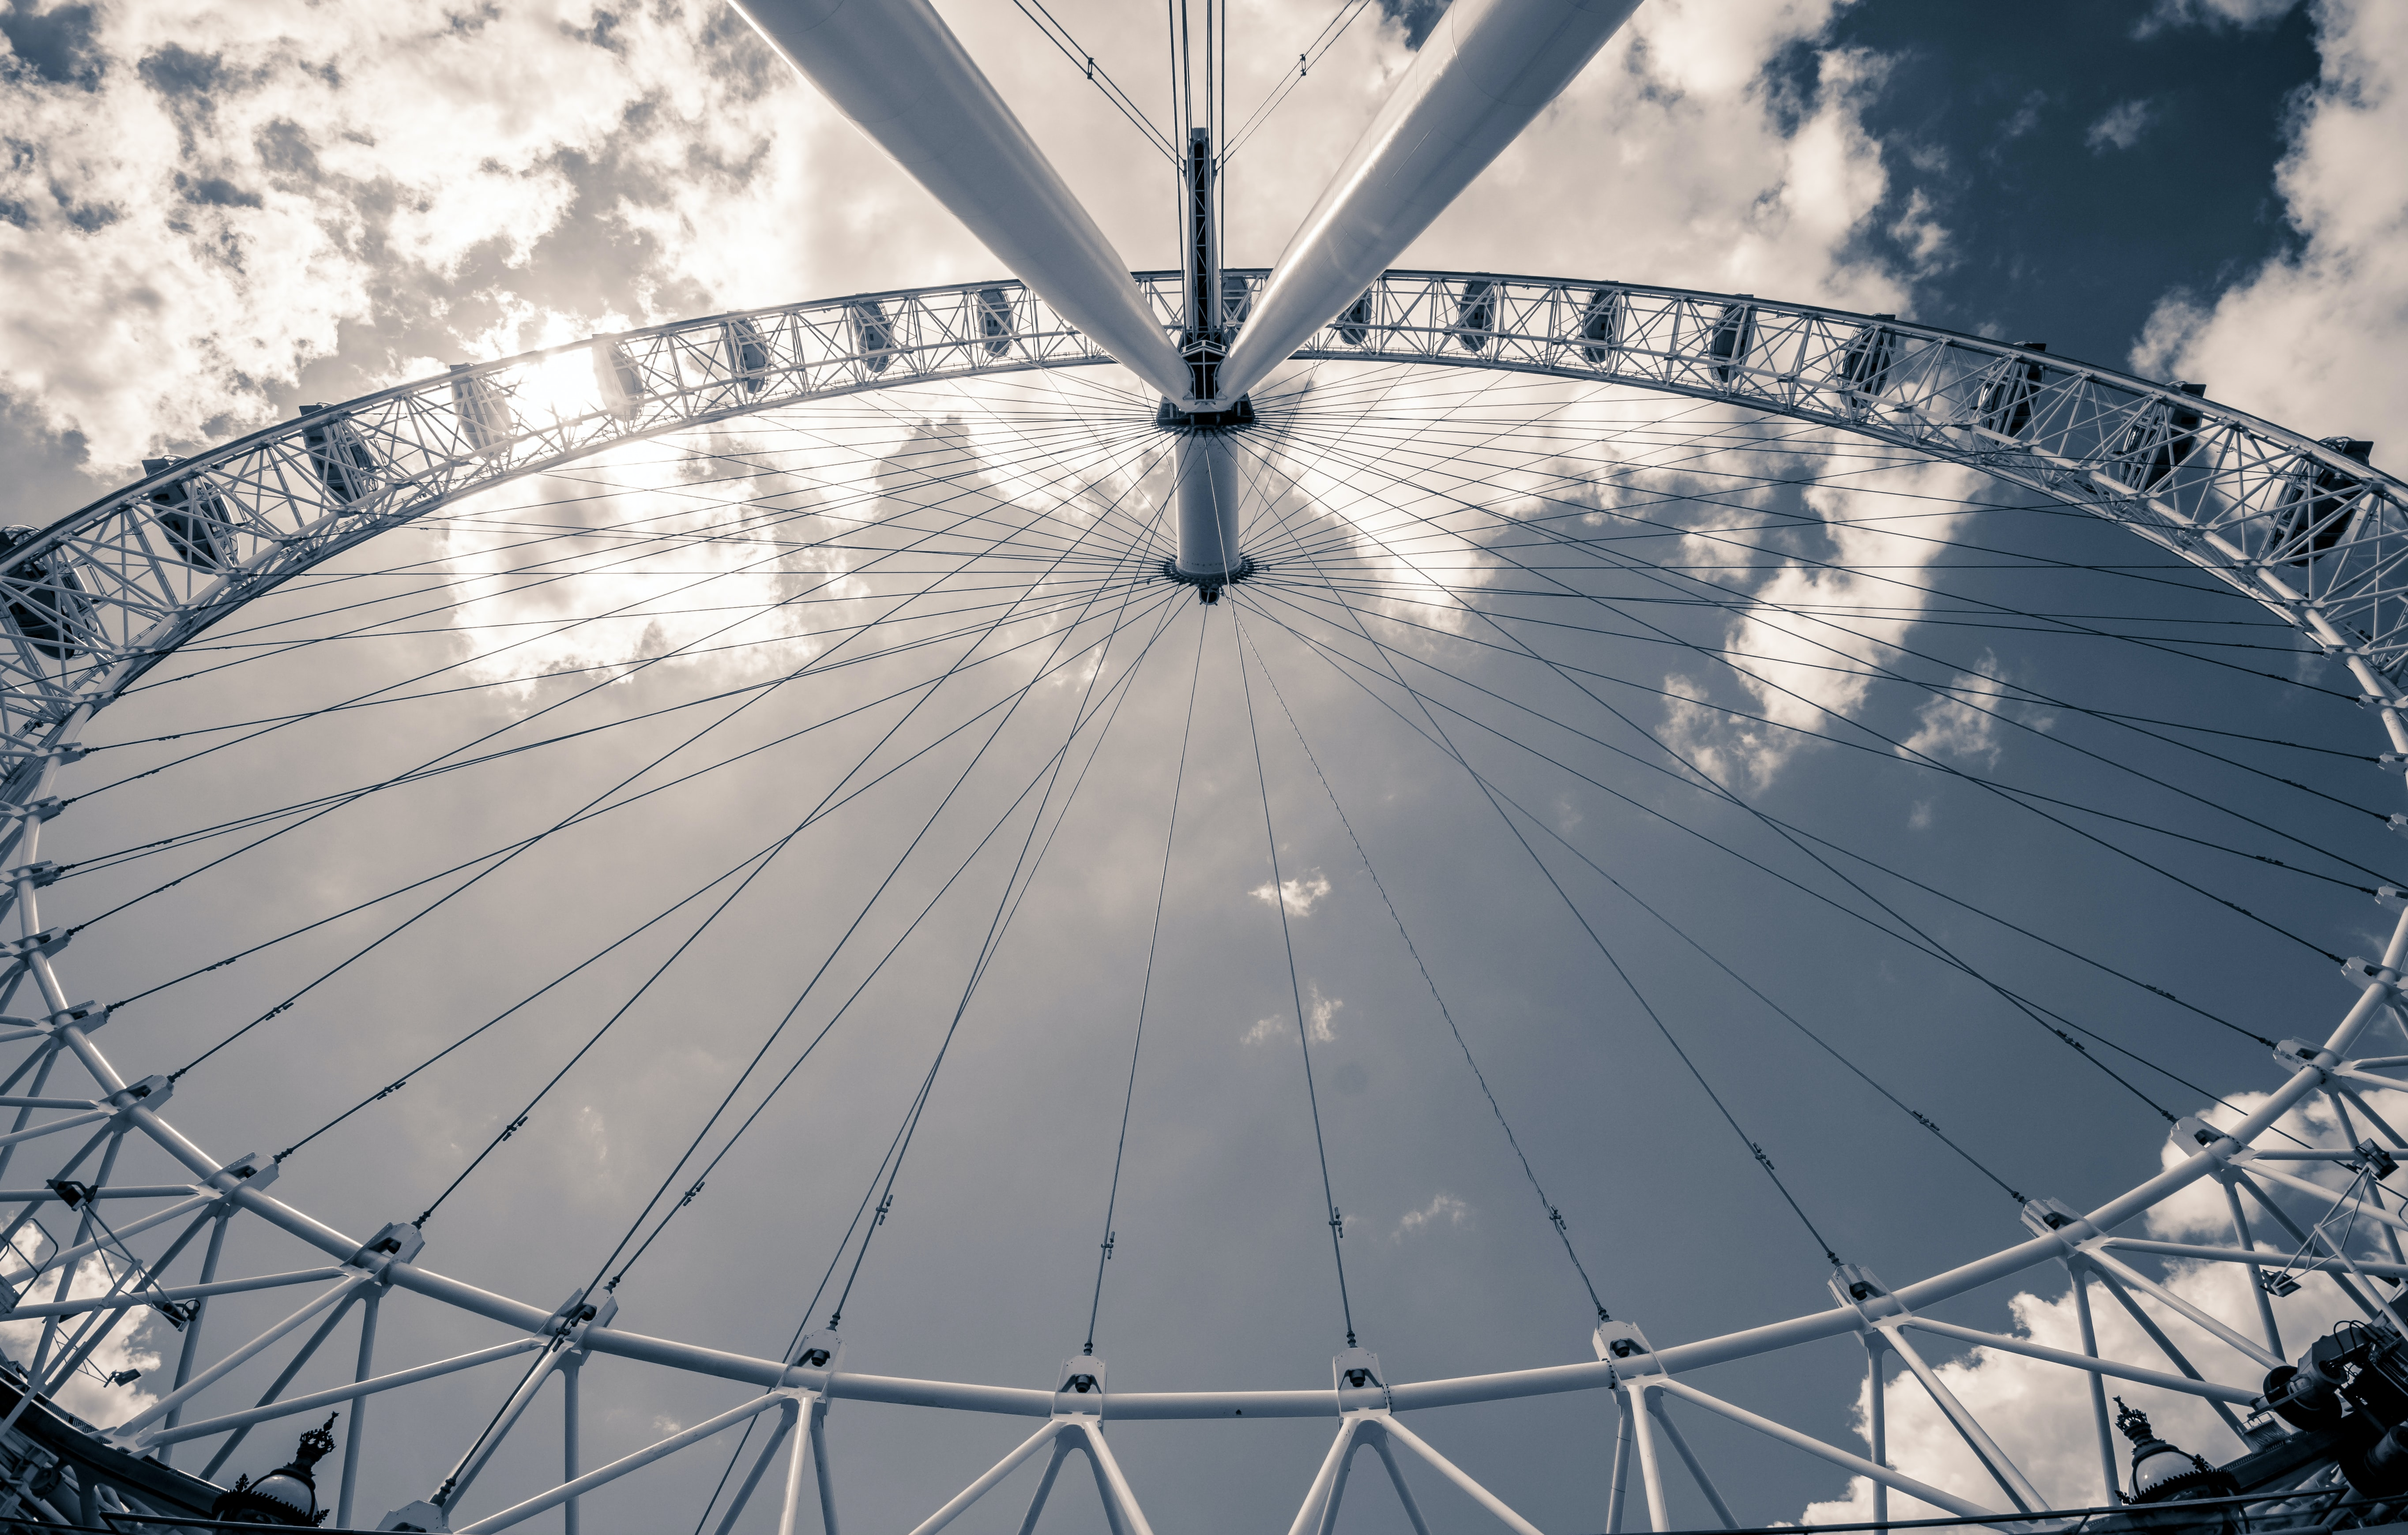 A Ferris wheel seen against a blue sky with fluffy clouds